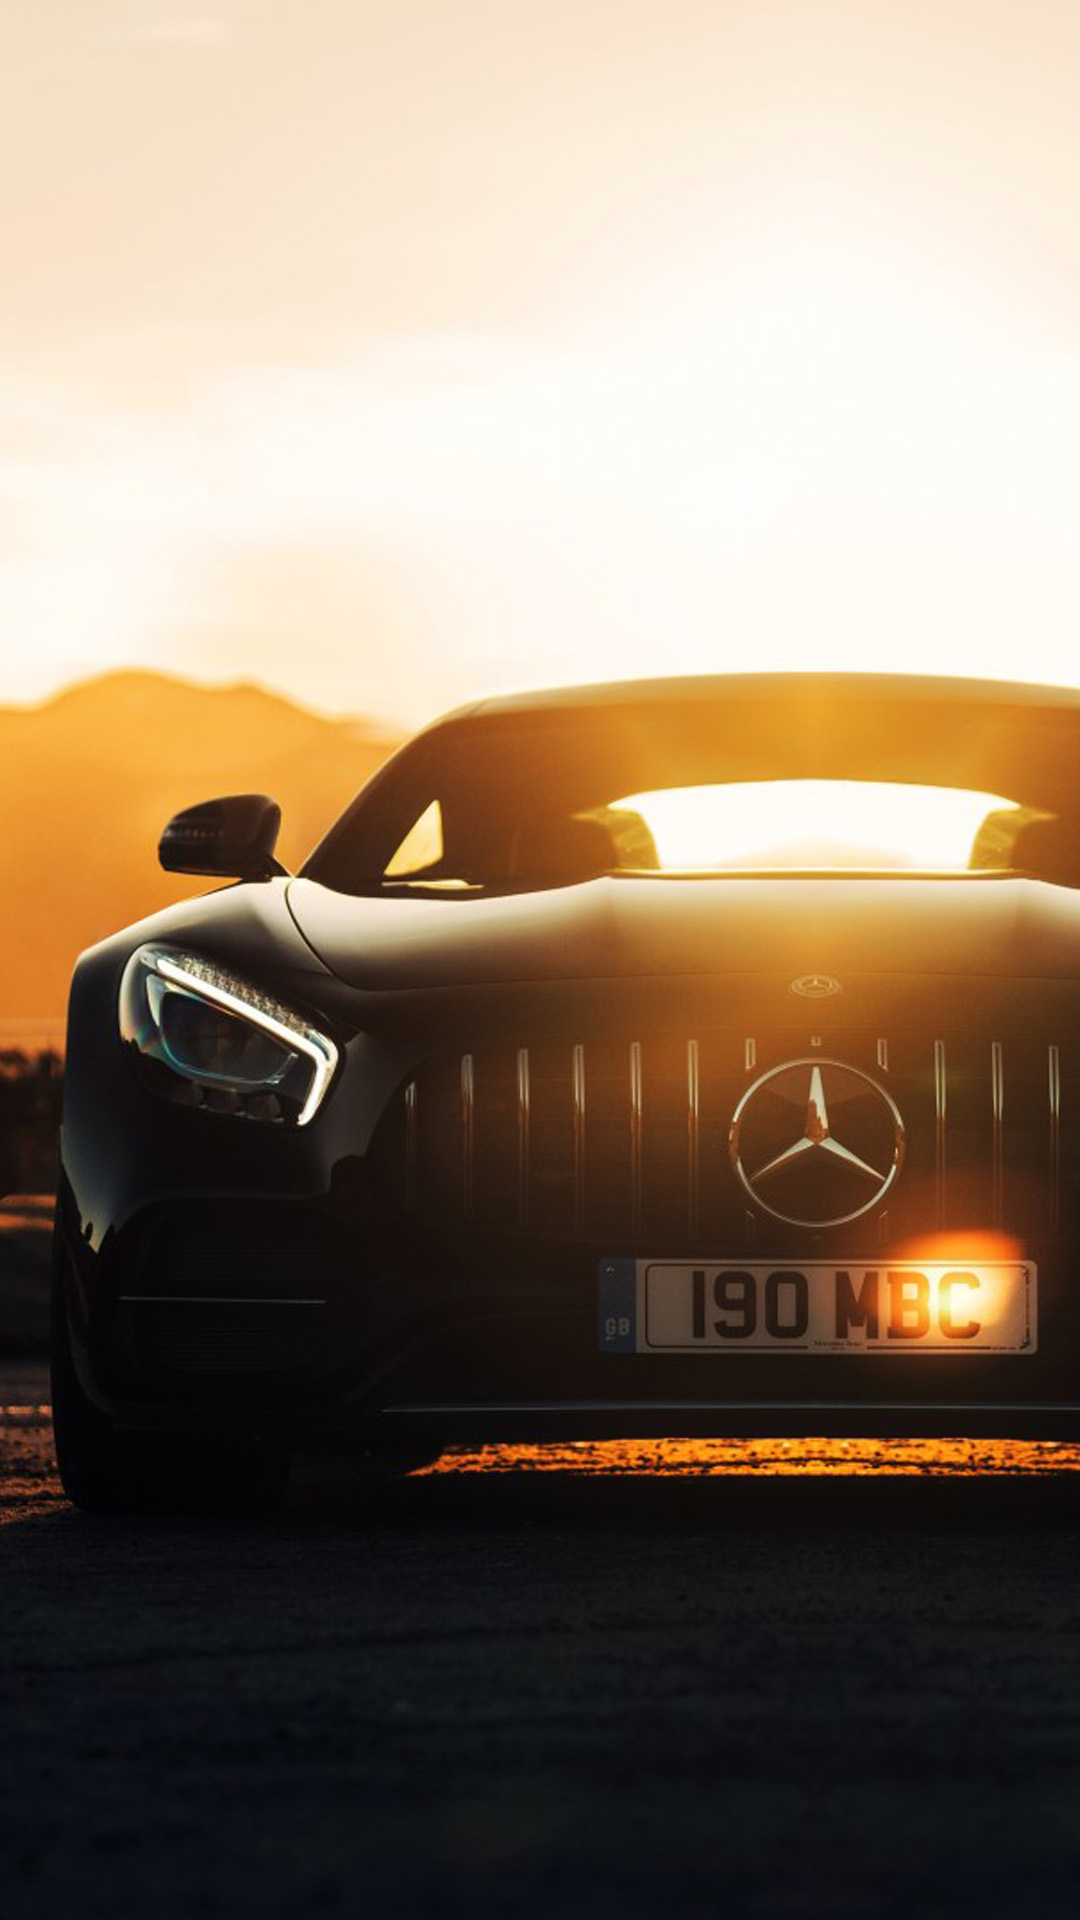 Mercedes Amg Gt C Sports Car Sunset 4k Ultra Hd Mobile Wallpaper